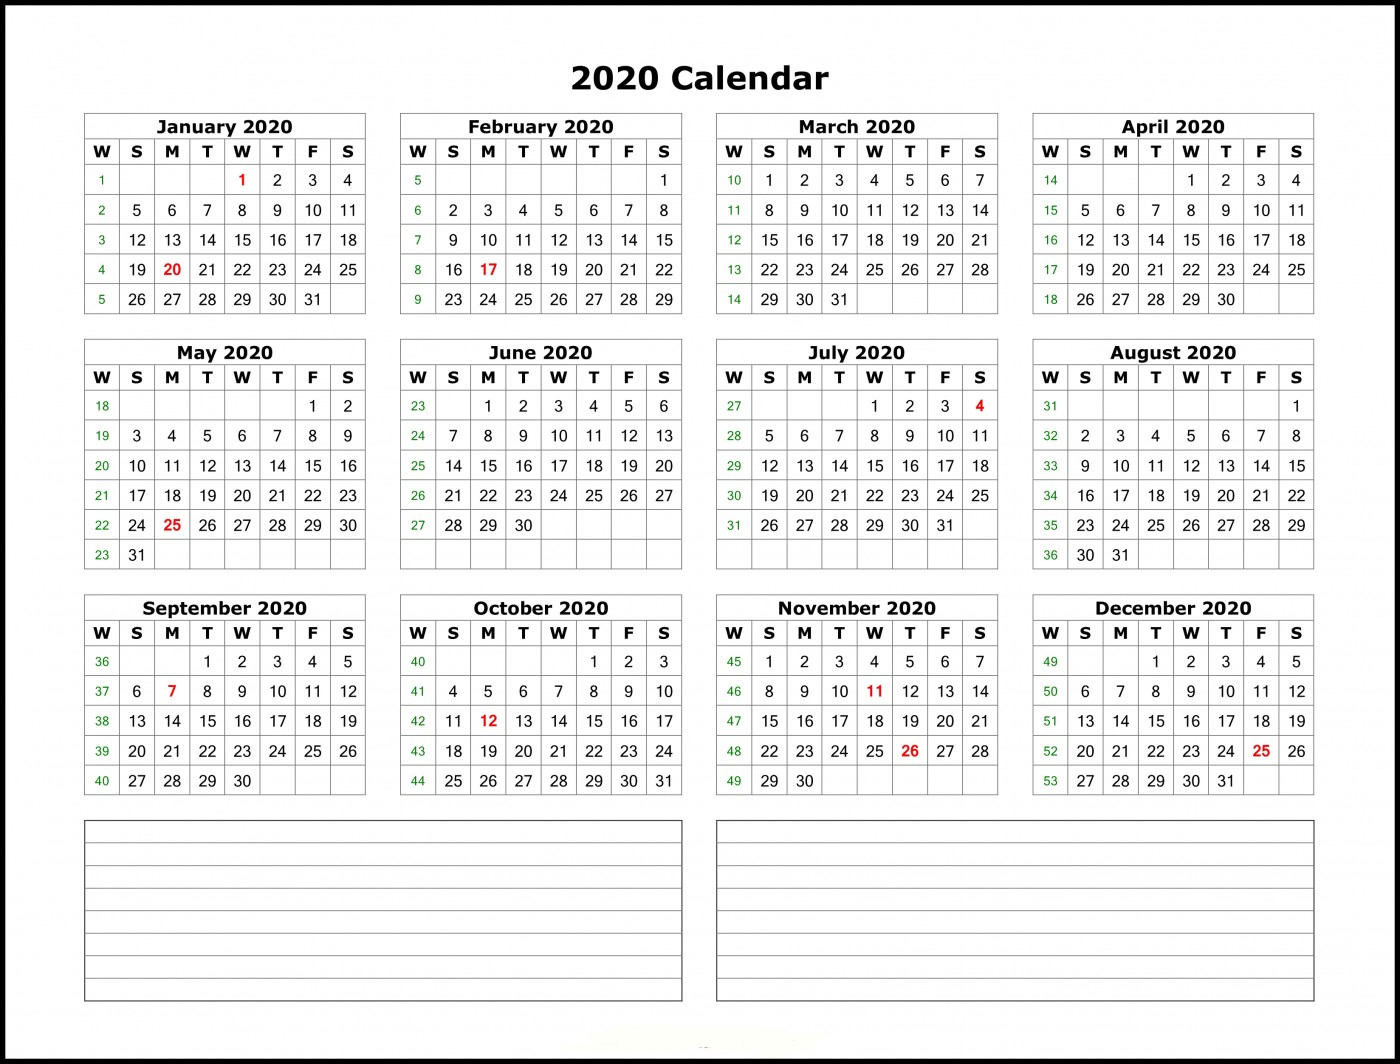 011 Free Excel Yearly Calendar Template Ideas Img pertaining to Kalendar Excel 2020